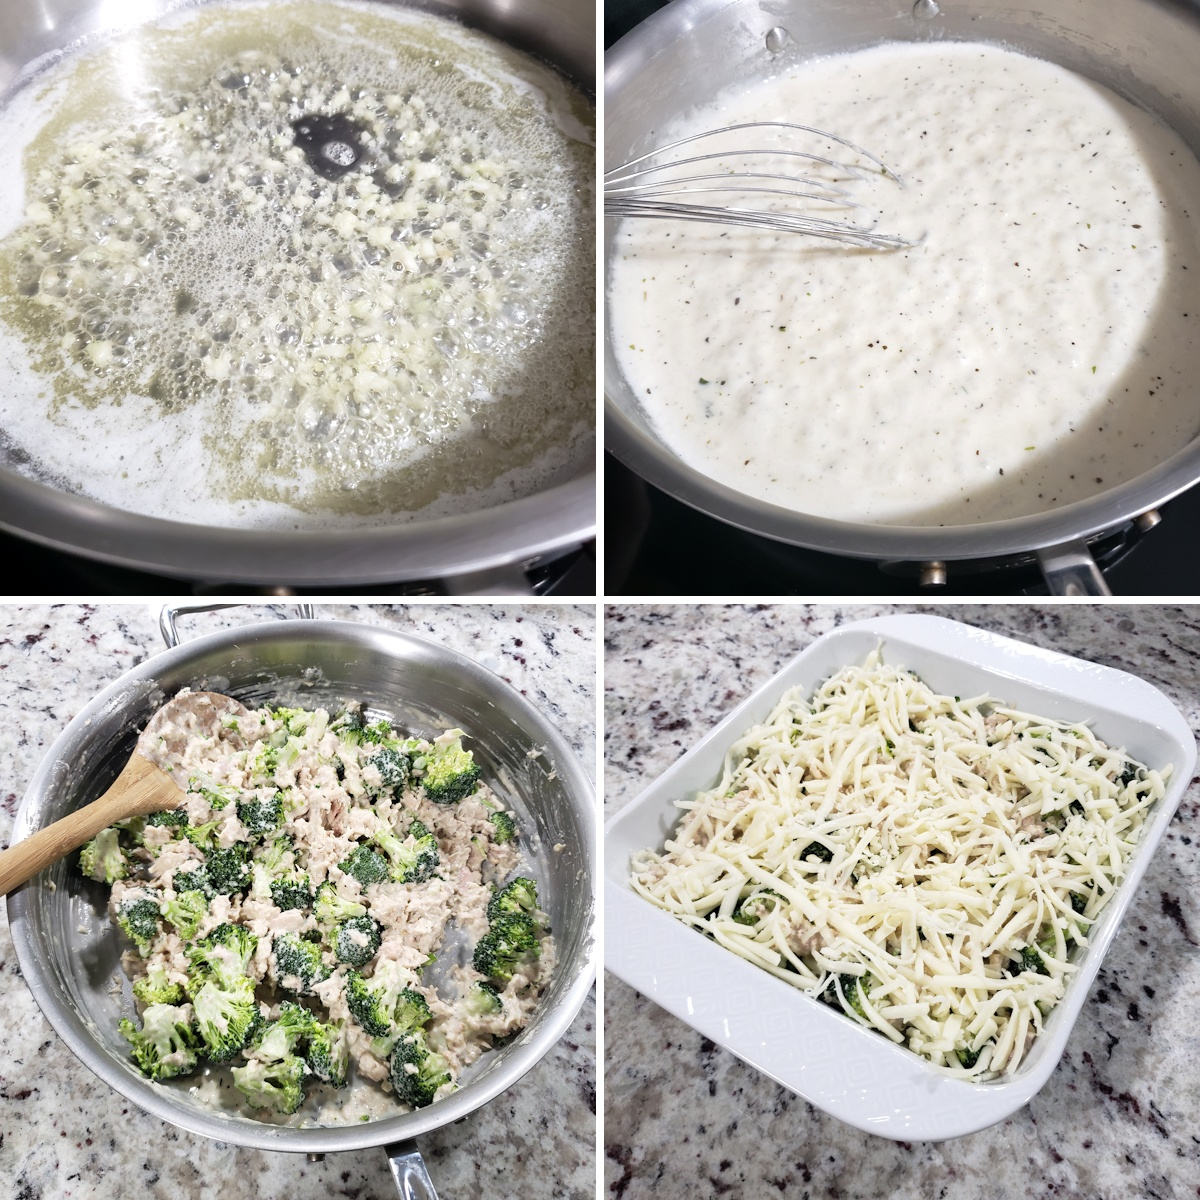 Assembling a tuna broccoli casserole.